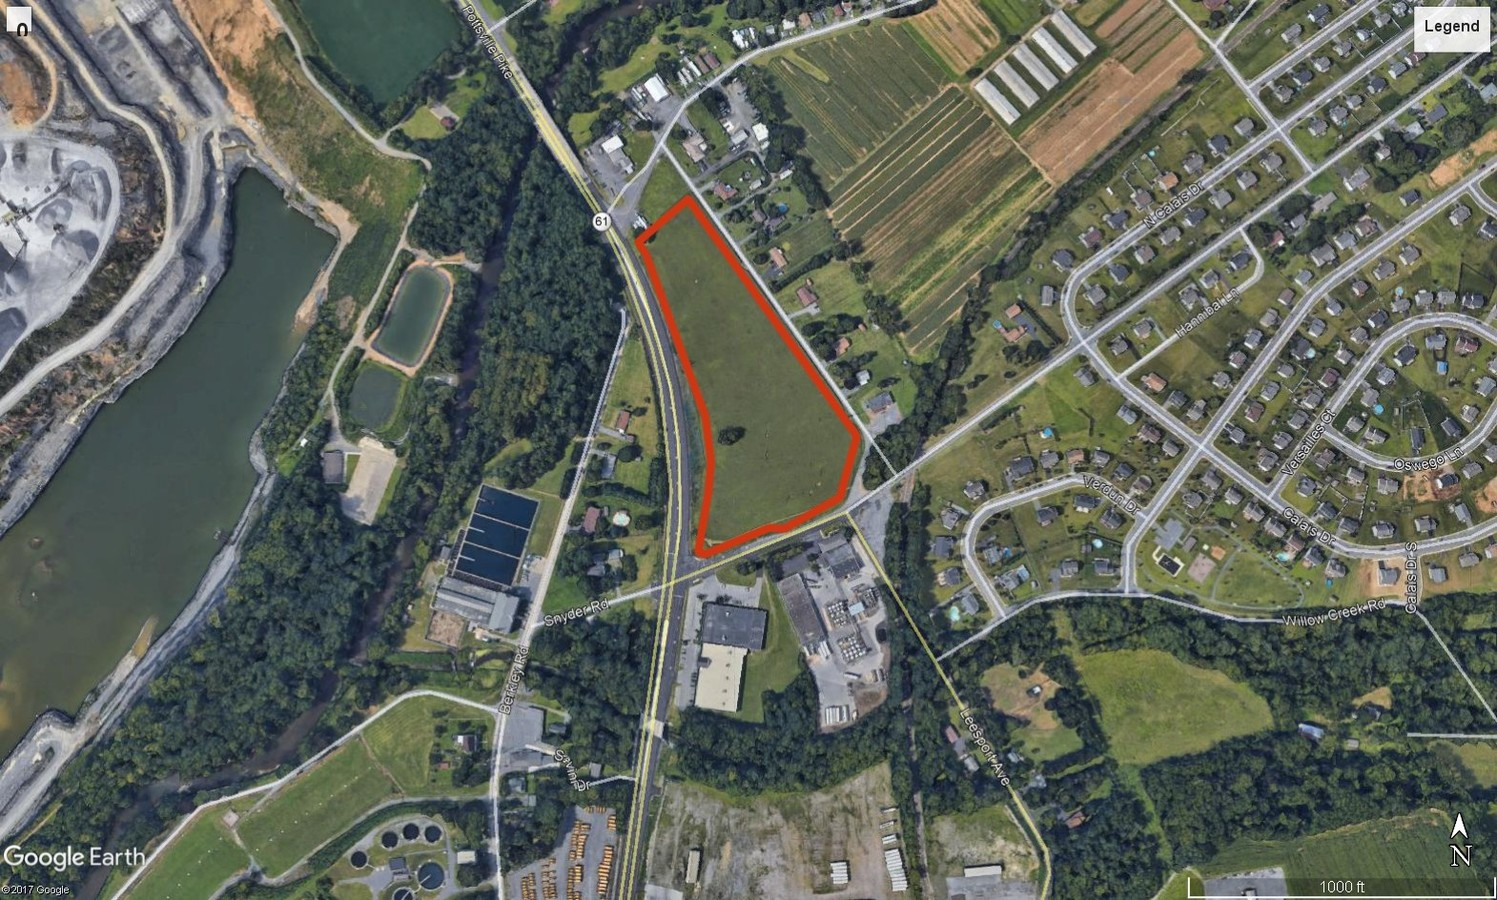 0 Snyder Road Ontelaunee Township PA is commercial land that is available for purchase. Contact Kent Wrobel, commercial realtor in Berks County, PA to learn more.